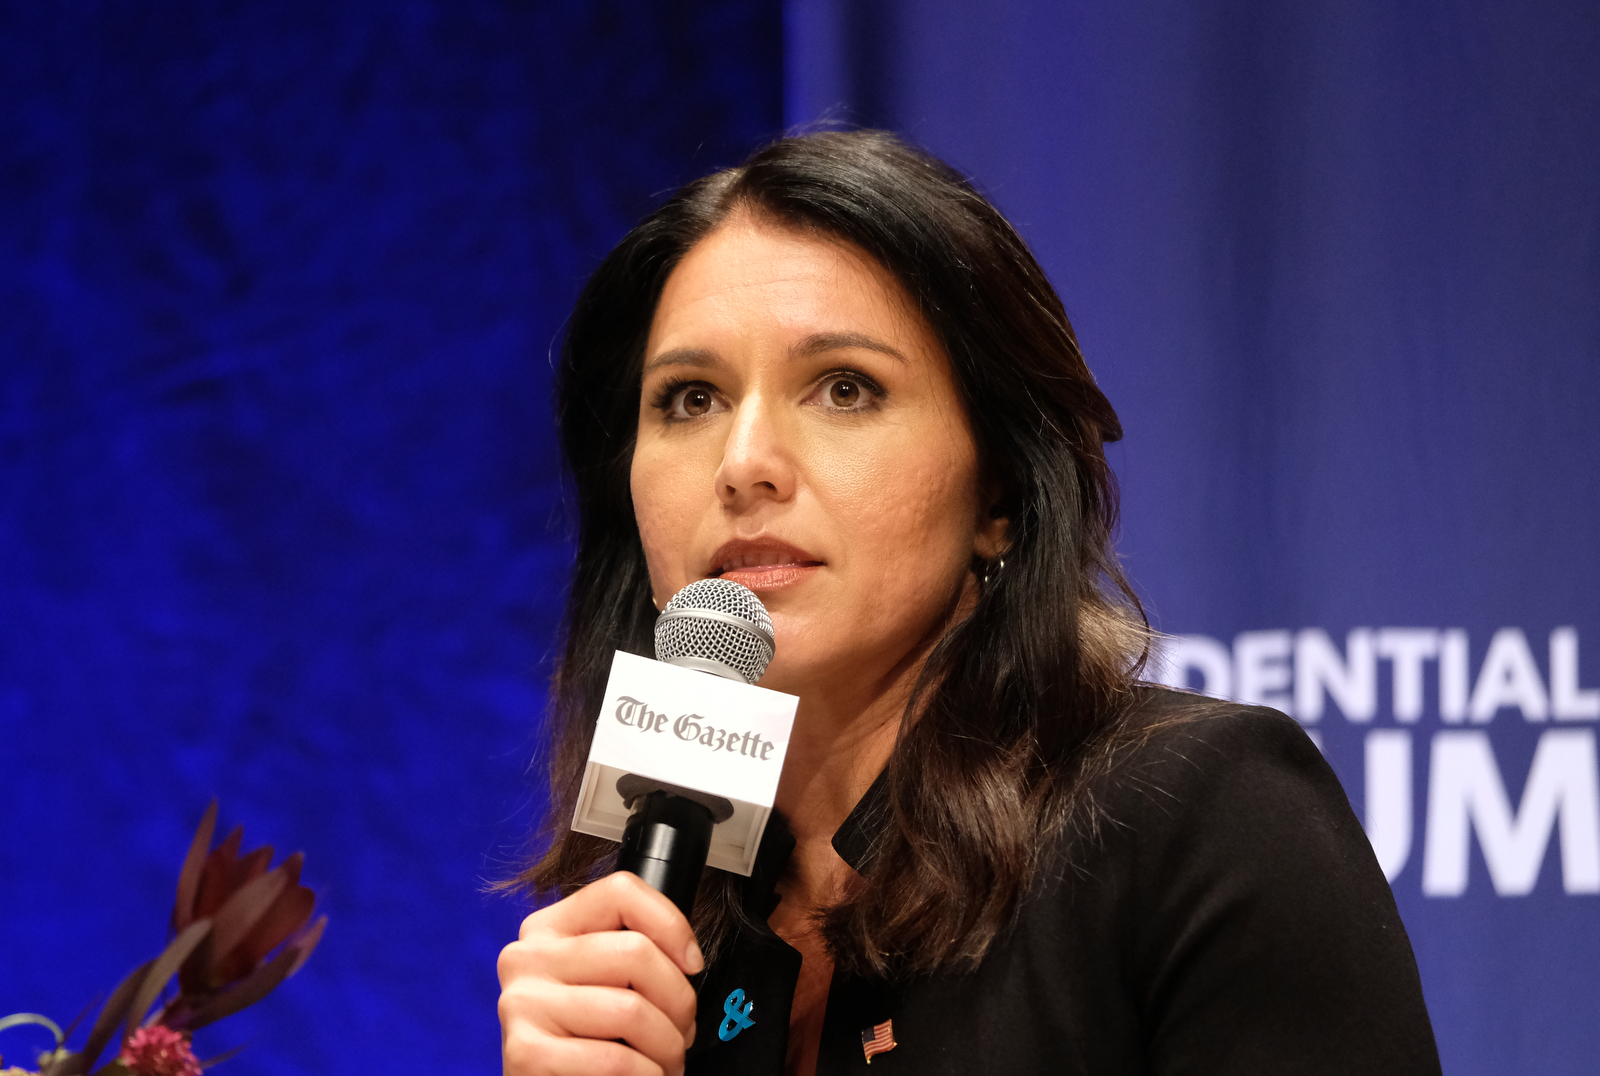 Democratic presidential candidate Rep. Tulsi Gabbard (D-HI) speaks at the Presidential Candidate Forum on LGBTQ Issues at the Sinclair Auditorium at Coe College on September 20, 2019 in Cedar Rapids, Iowa. (Photo by Alex Wroblewski/Getty Images for GLAAD)